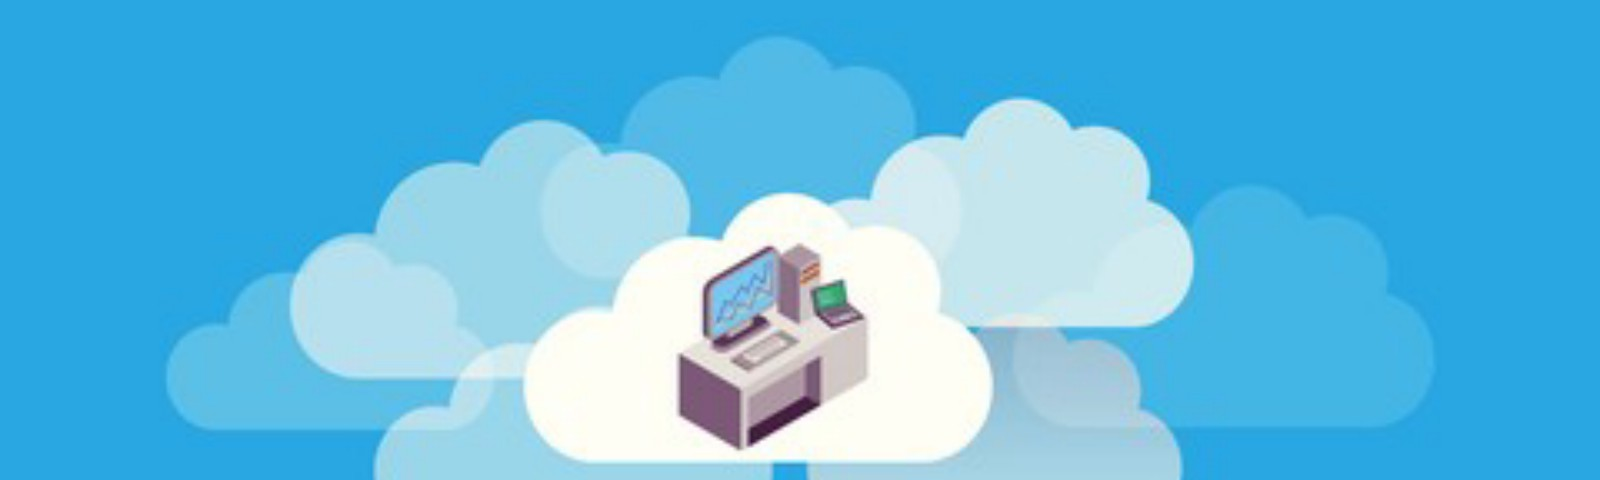 Udemy - Create a vSphere 6.0 VCP Lab with VMware Workstation